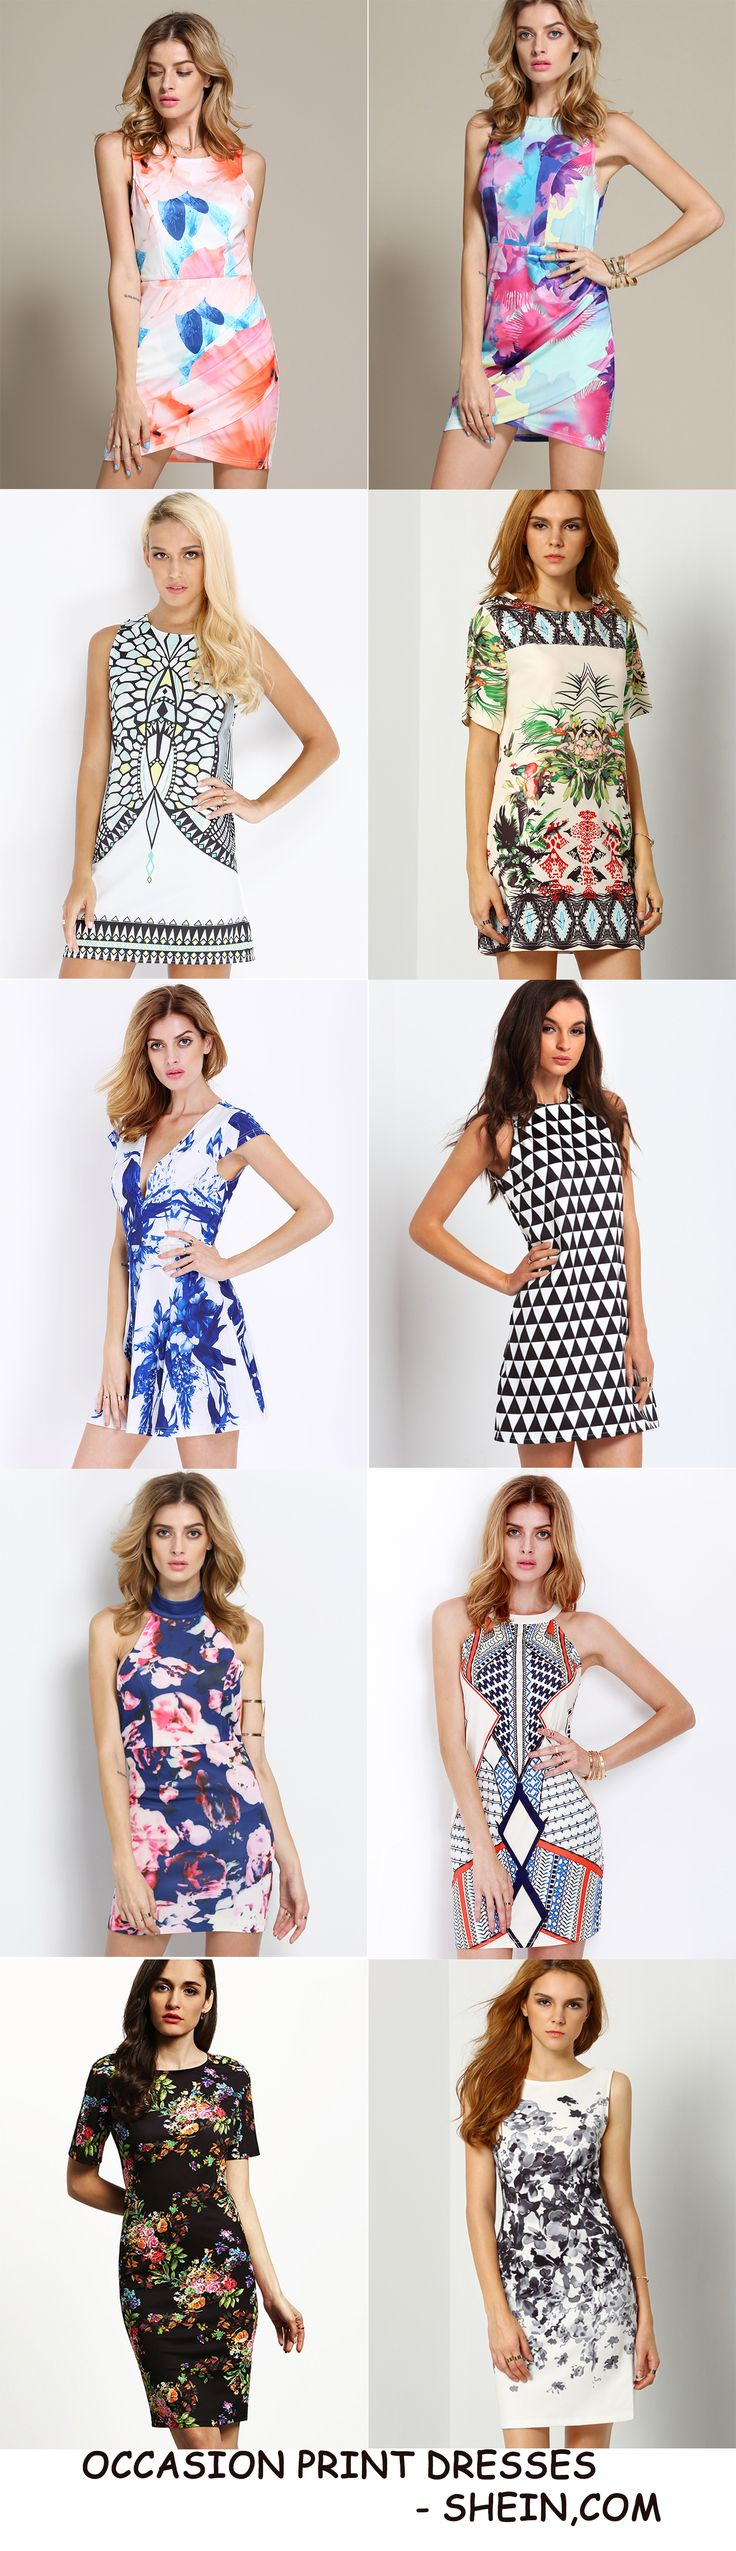 SheIn - clothing, swimsuits & accessories